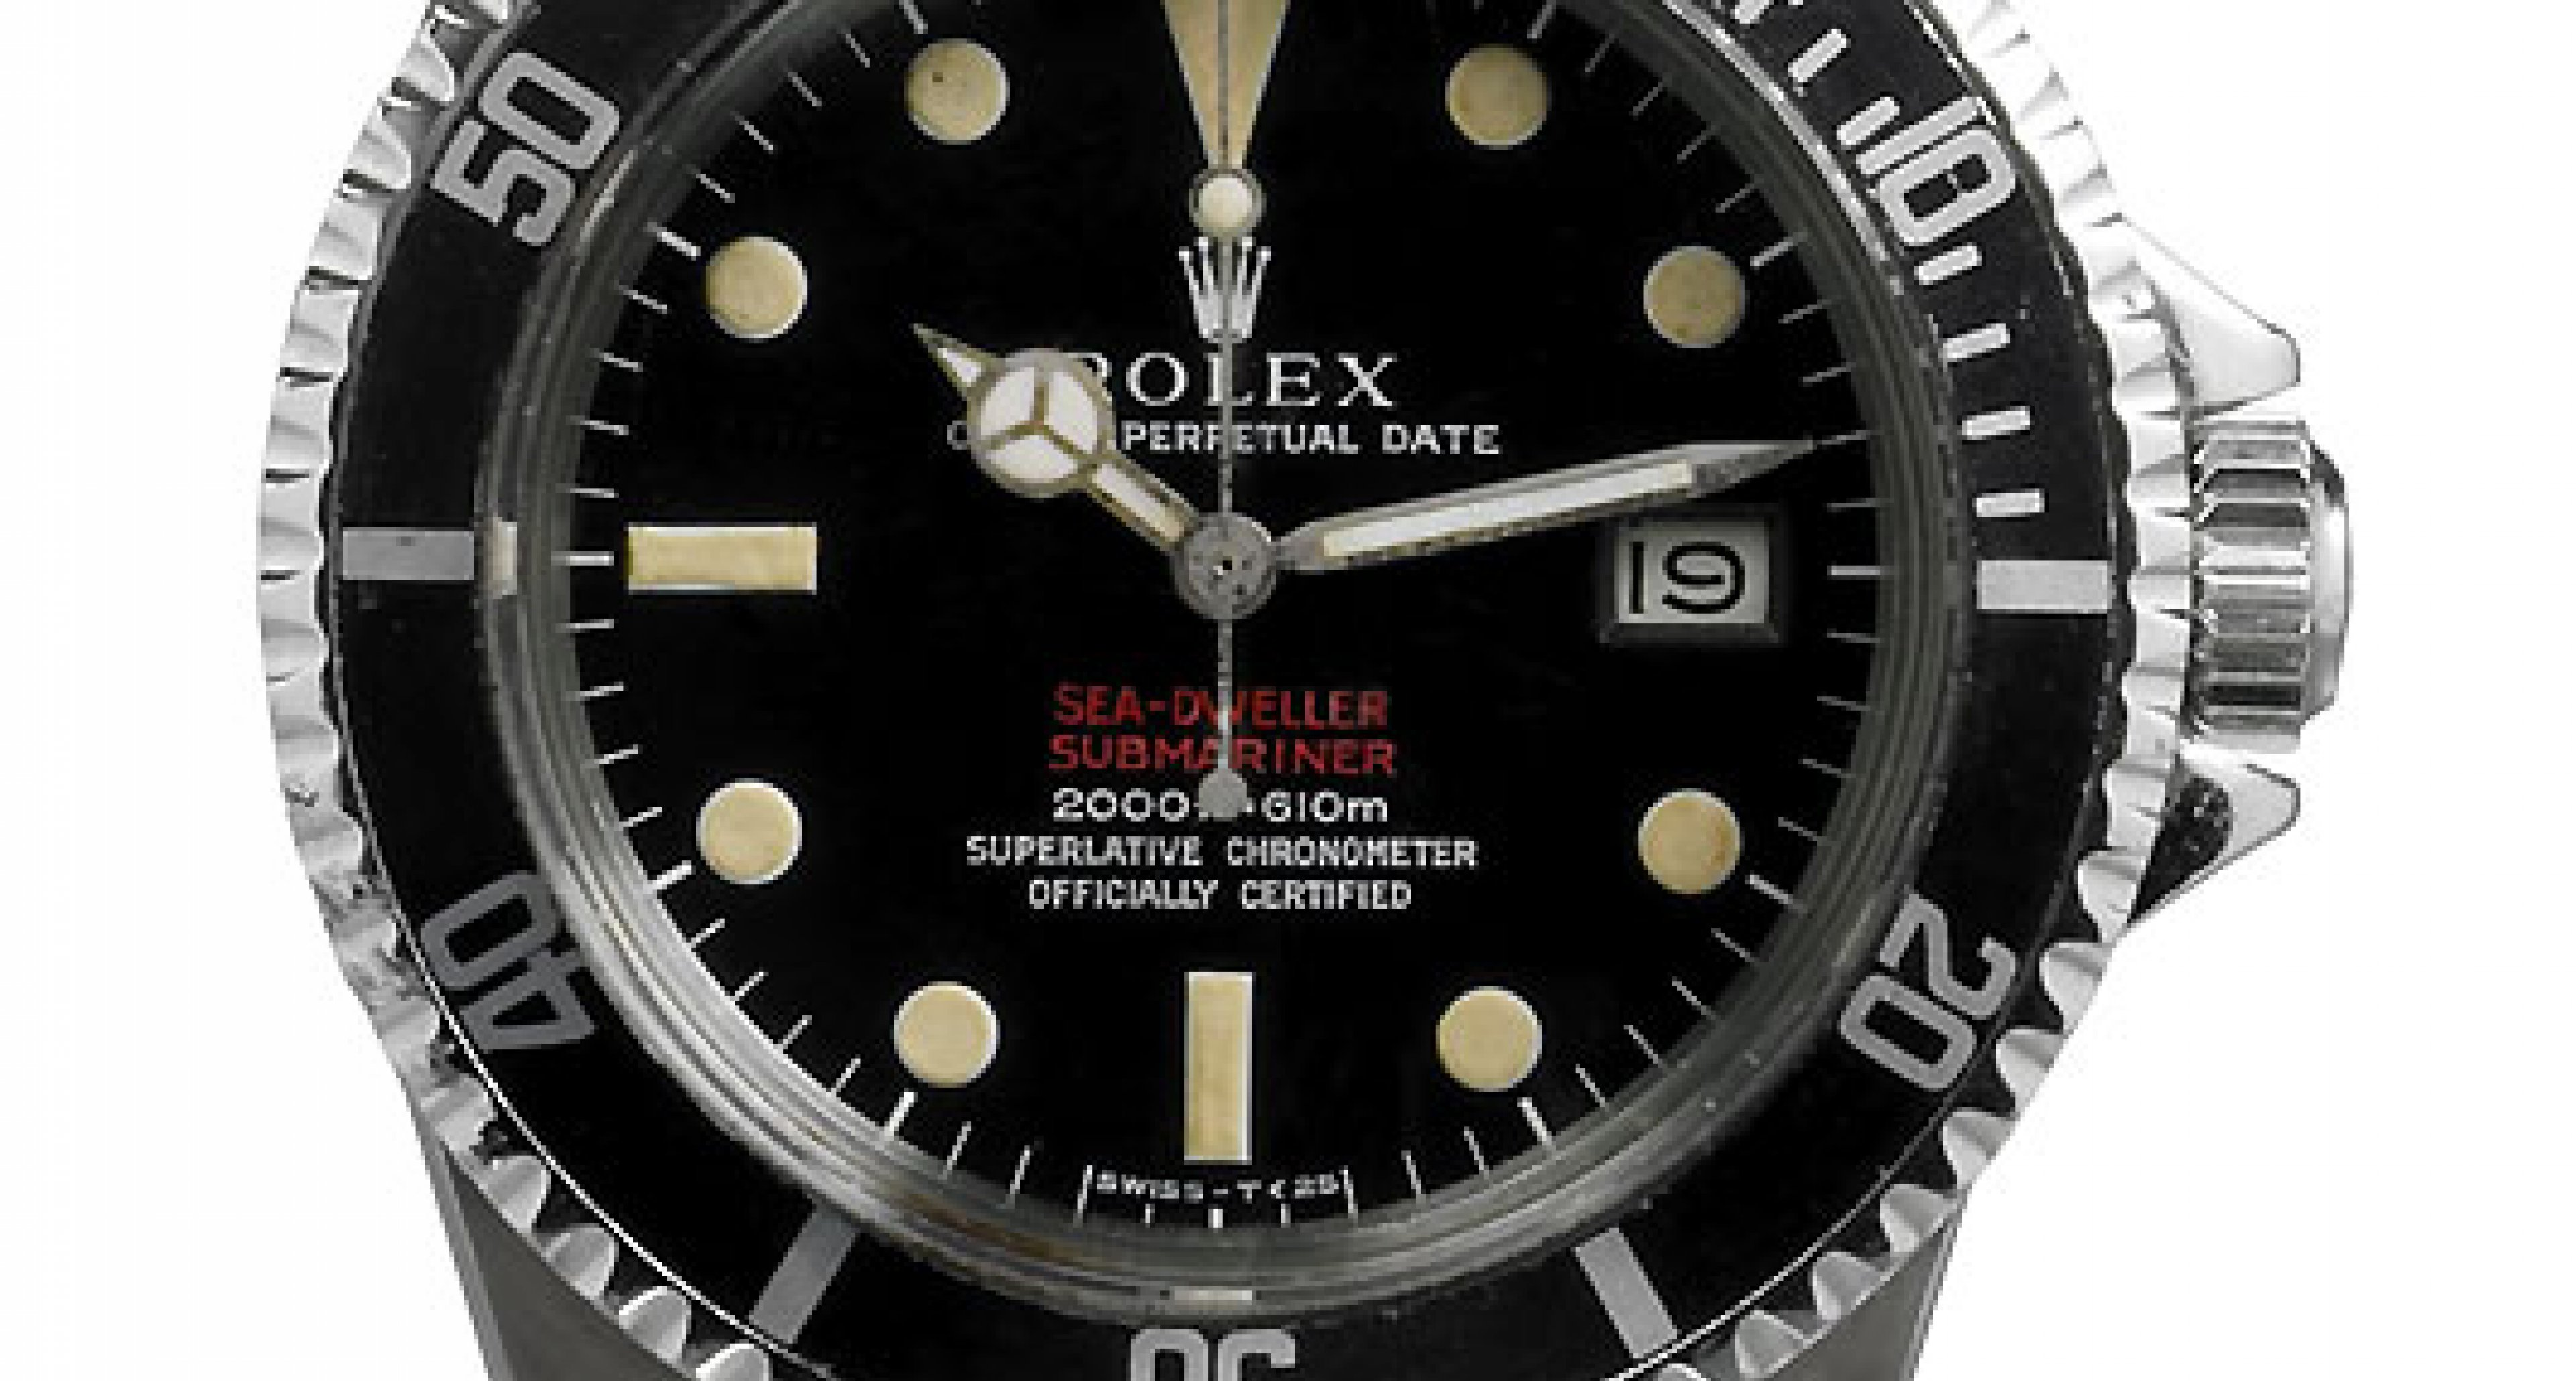 Rolex  Auktion: Evolution einer Legende